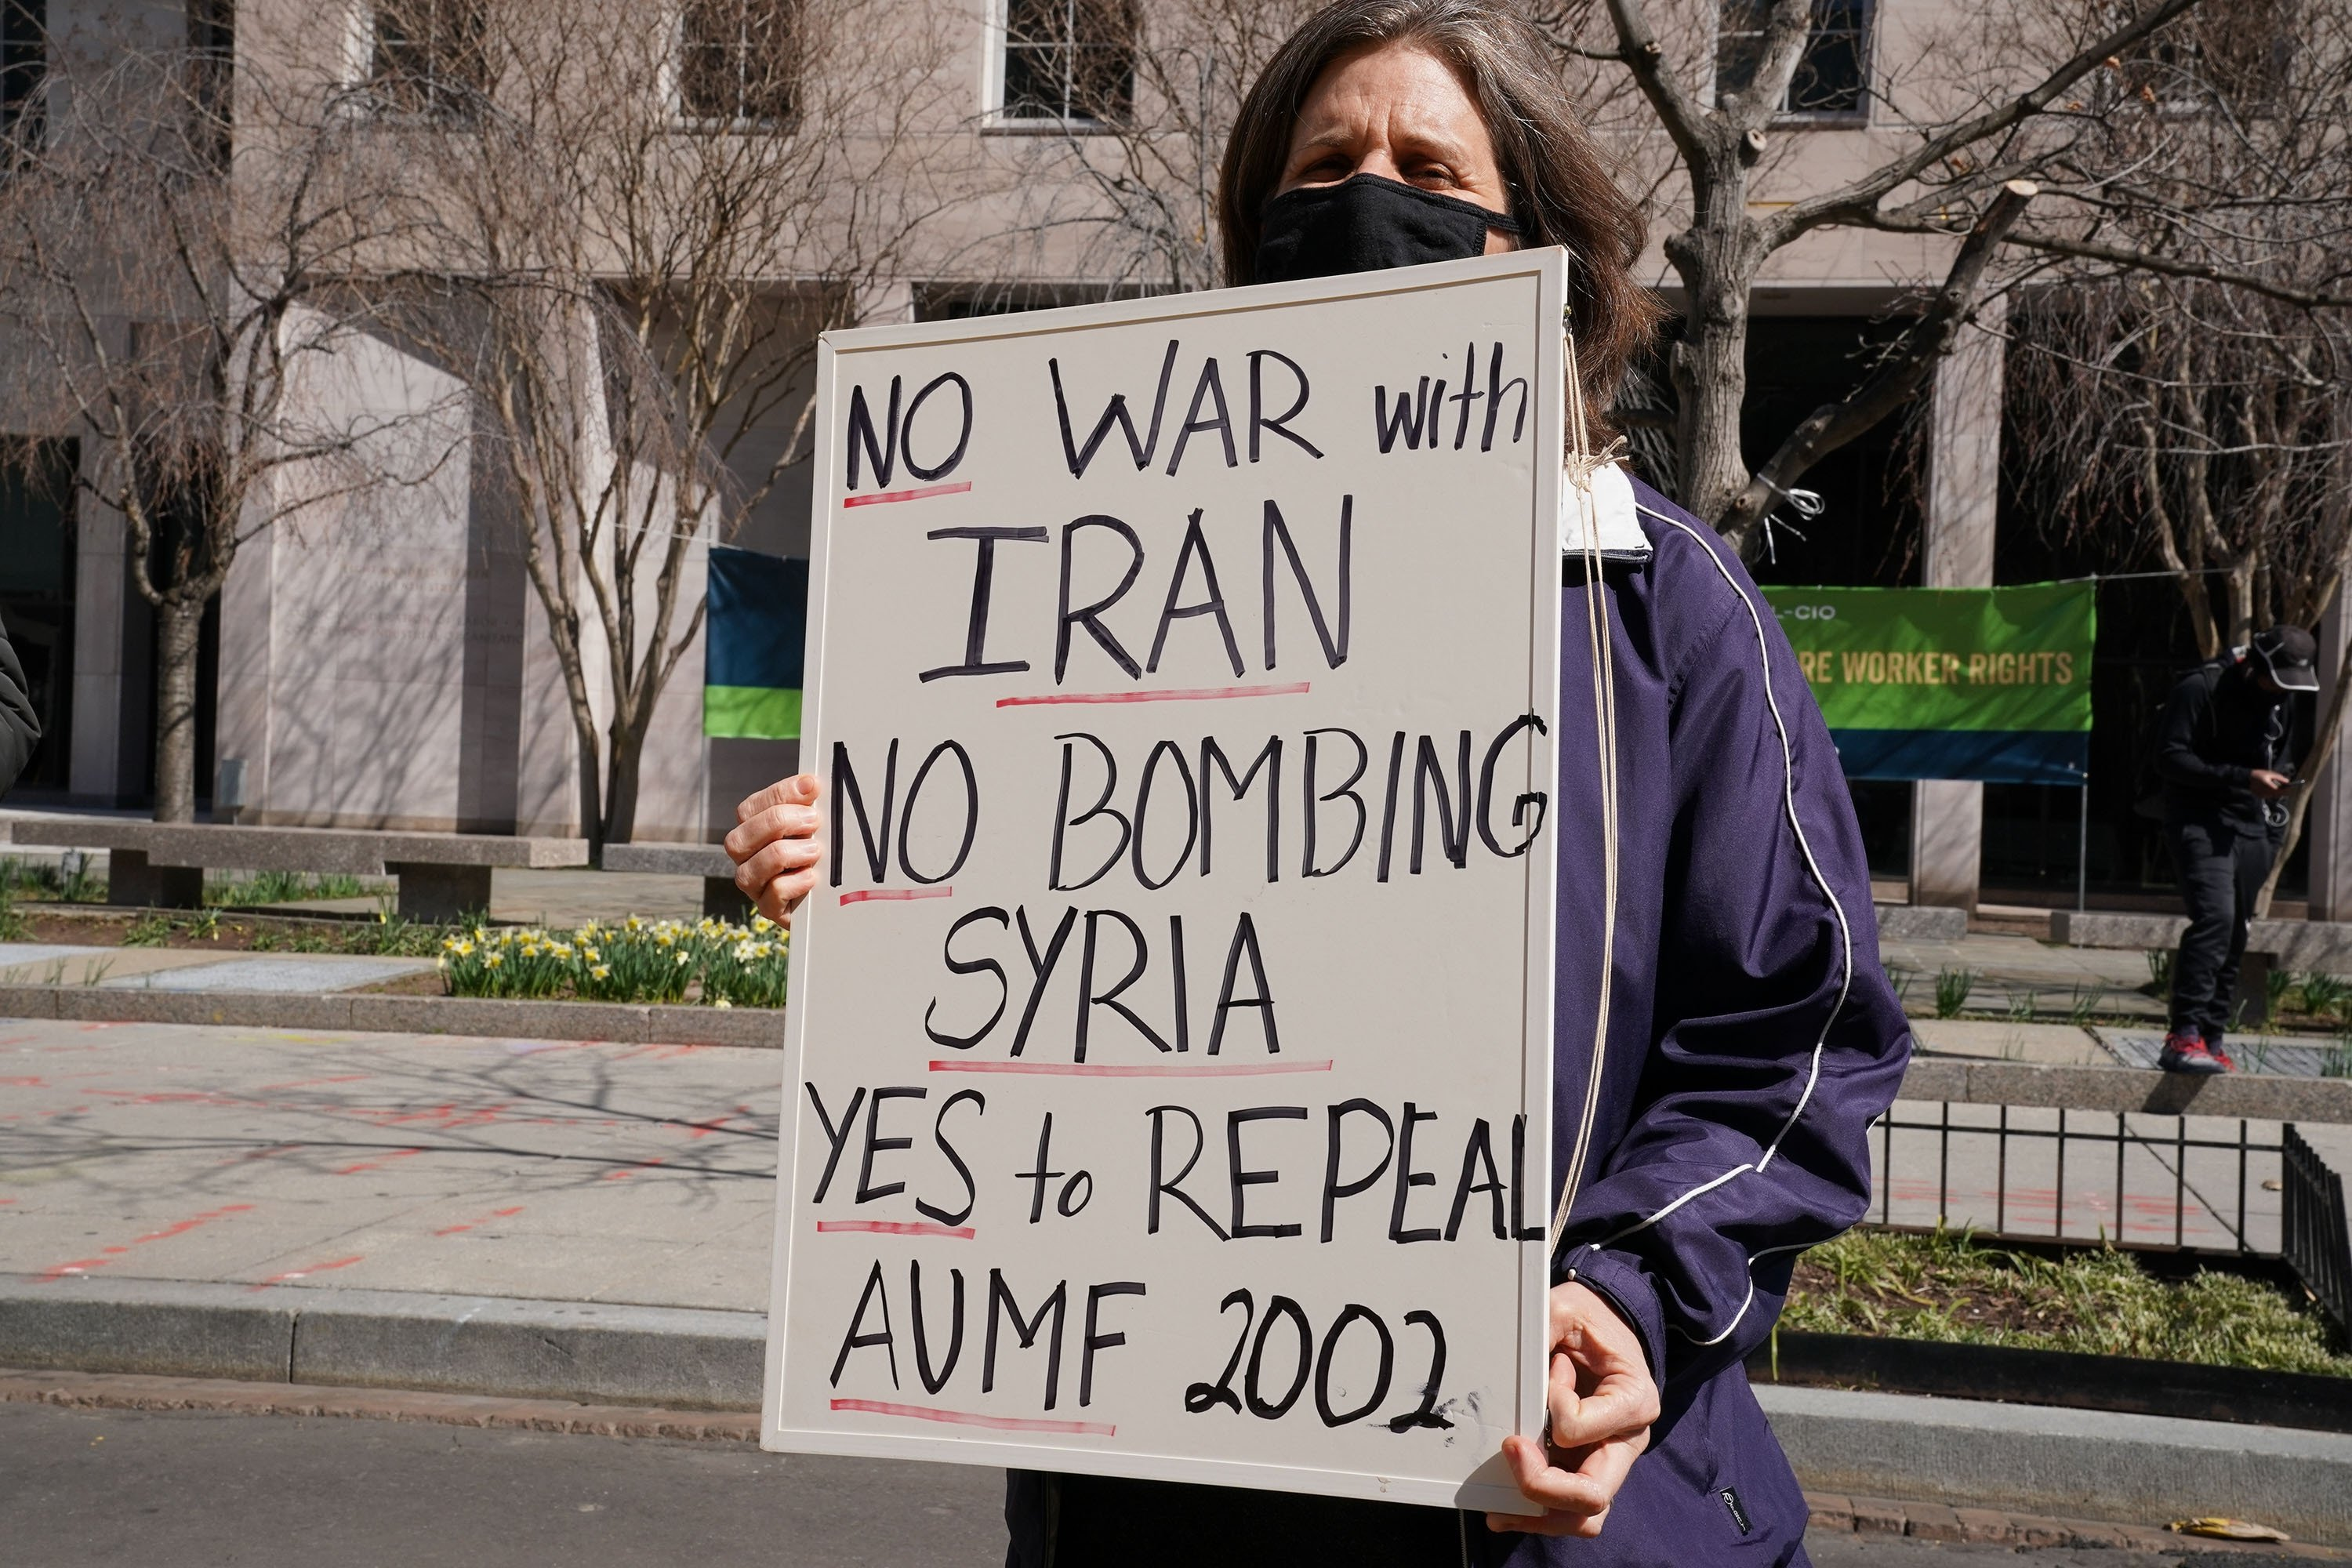 A demonstrator protests against any further aggression against Iran and Syria by asking the Biden administration to repeal the AUMF, in Washington D.C., U.S., Feb. 23, 2021. (Shutterstock Photo)